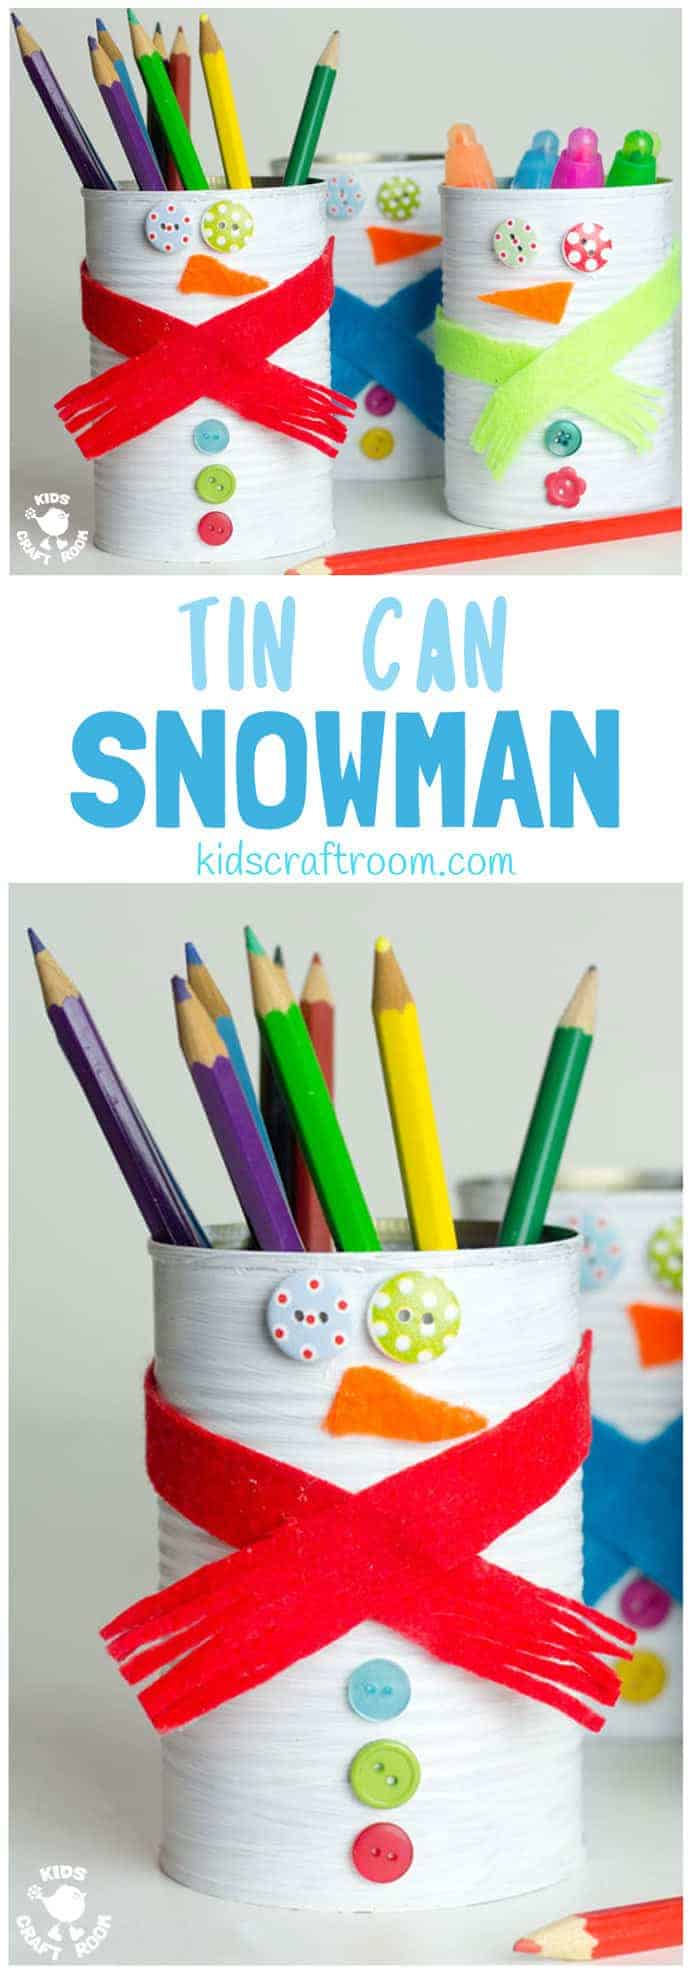 TIN CAN SNOWMAN CRAFT - Kids will love turning old tin cans into Snowman Desk Tidies and a Snowman Bowling Game with this cute and easy Tin Can Snowman Craft. A fun Winter craft for kids. #snowman #snowmancrafts #wintercrafts #wintercraftideas #wintercraftsforkids #recycledcrafts #tincan #craftideasforkids #kidscraftroom